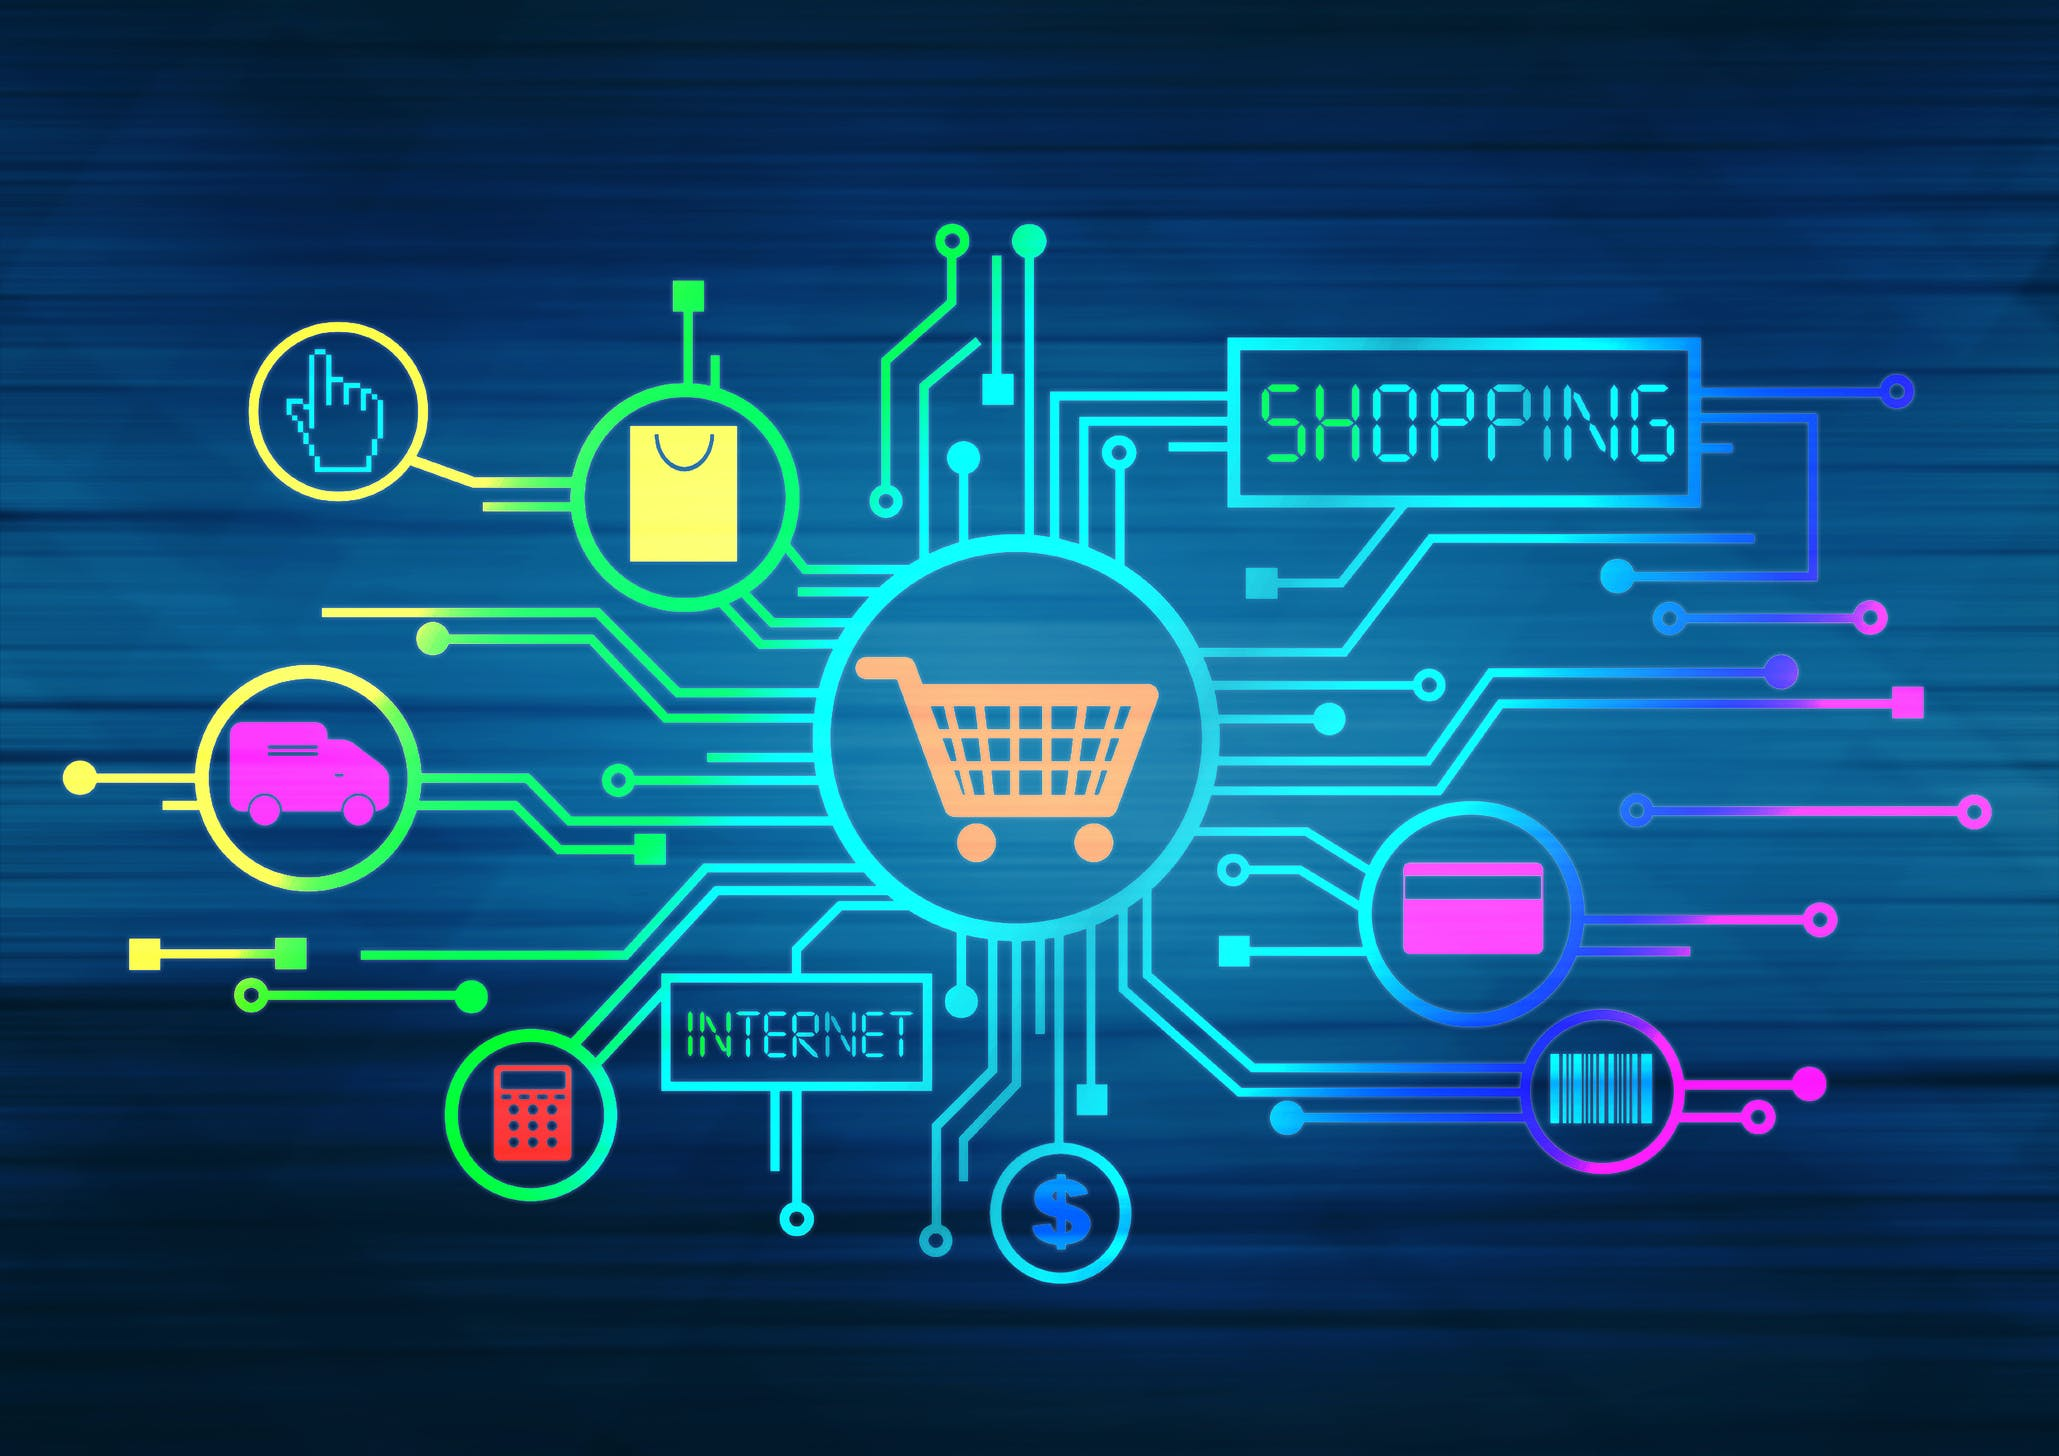 RMM E-COMMERCE TURNKEY SOLUTION 2021